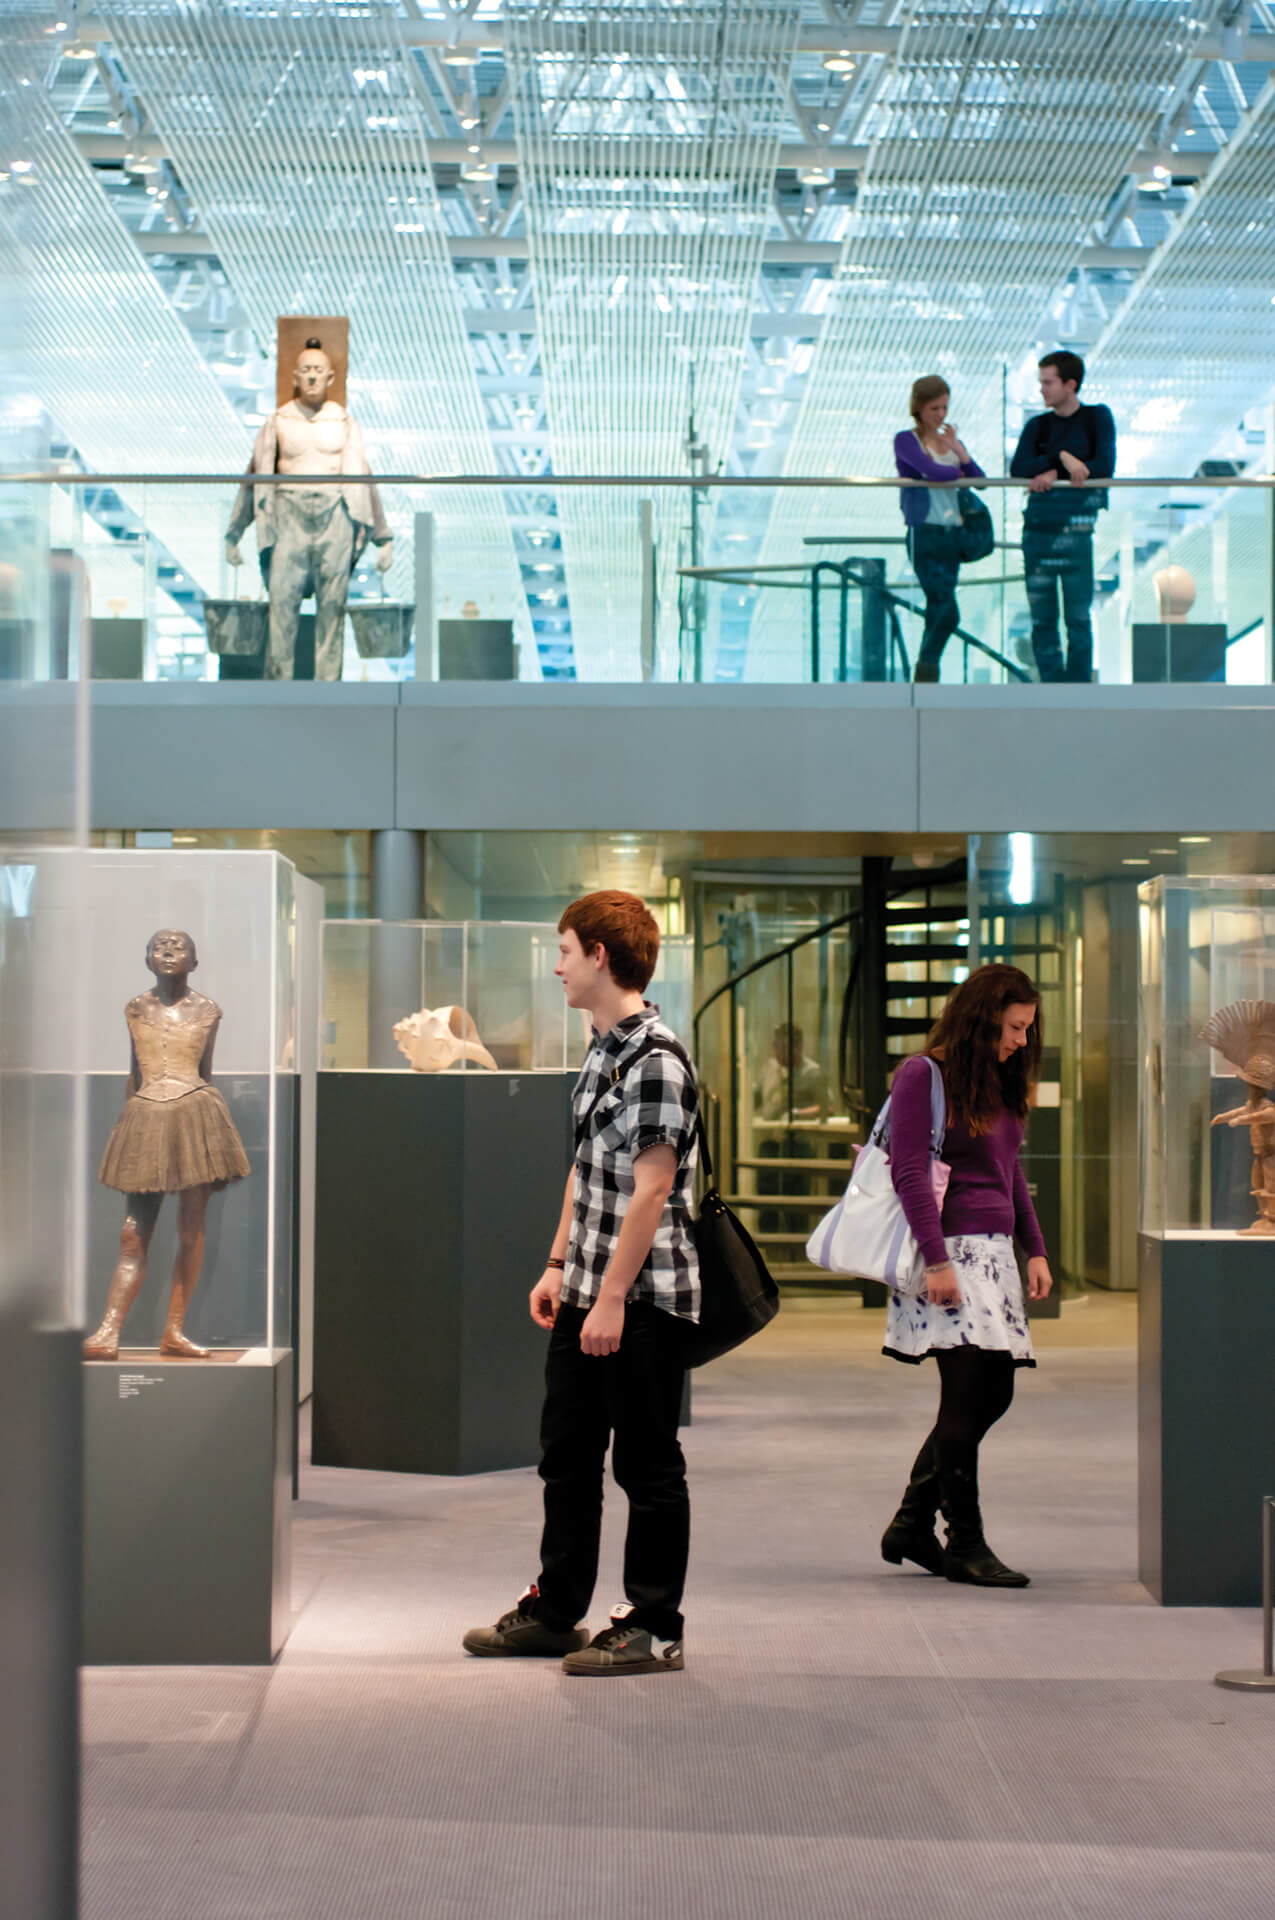 Students looking at art in the Sainsbury Centre